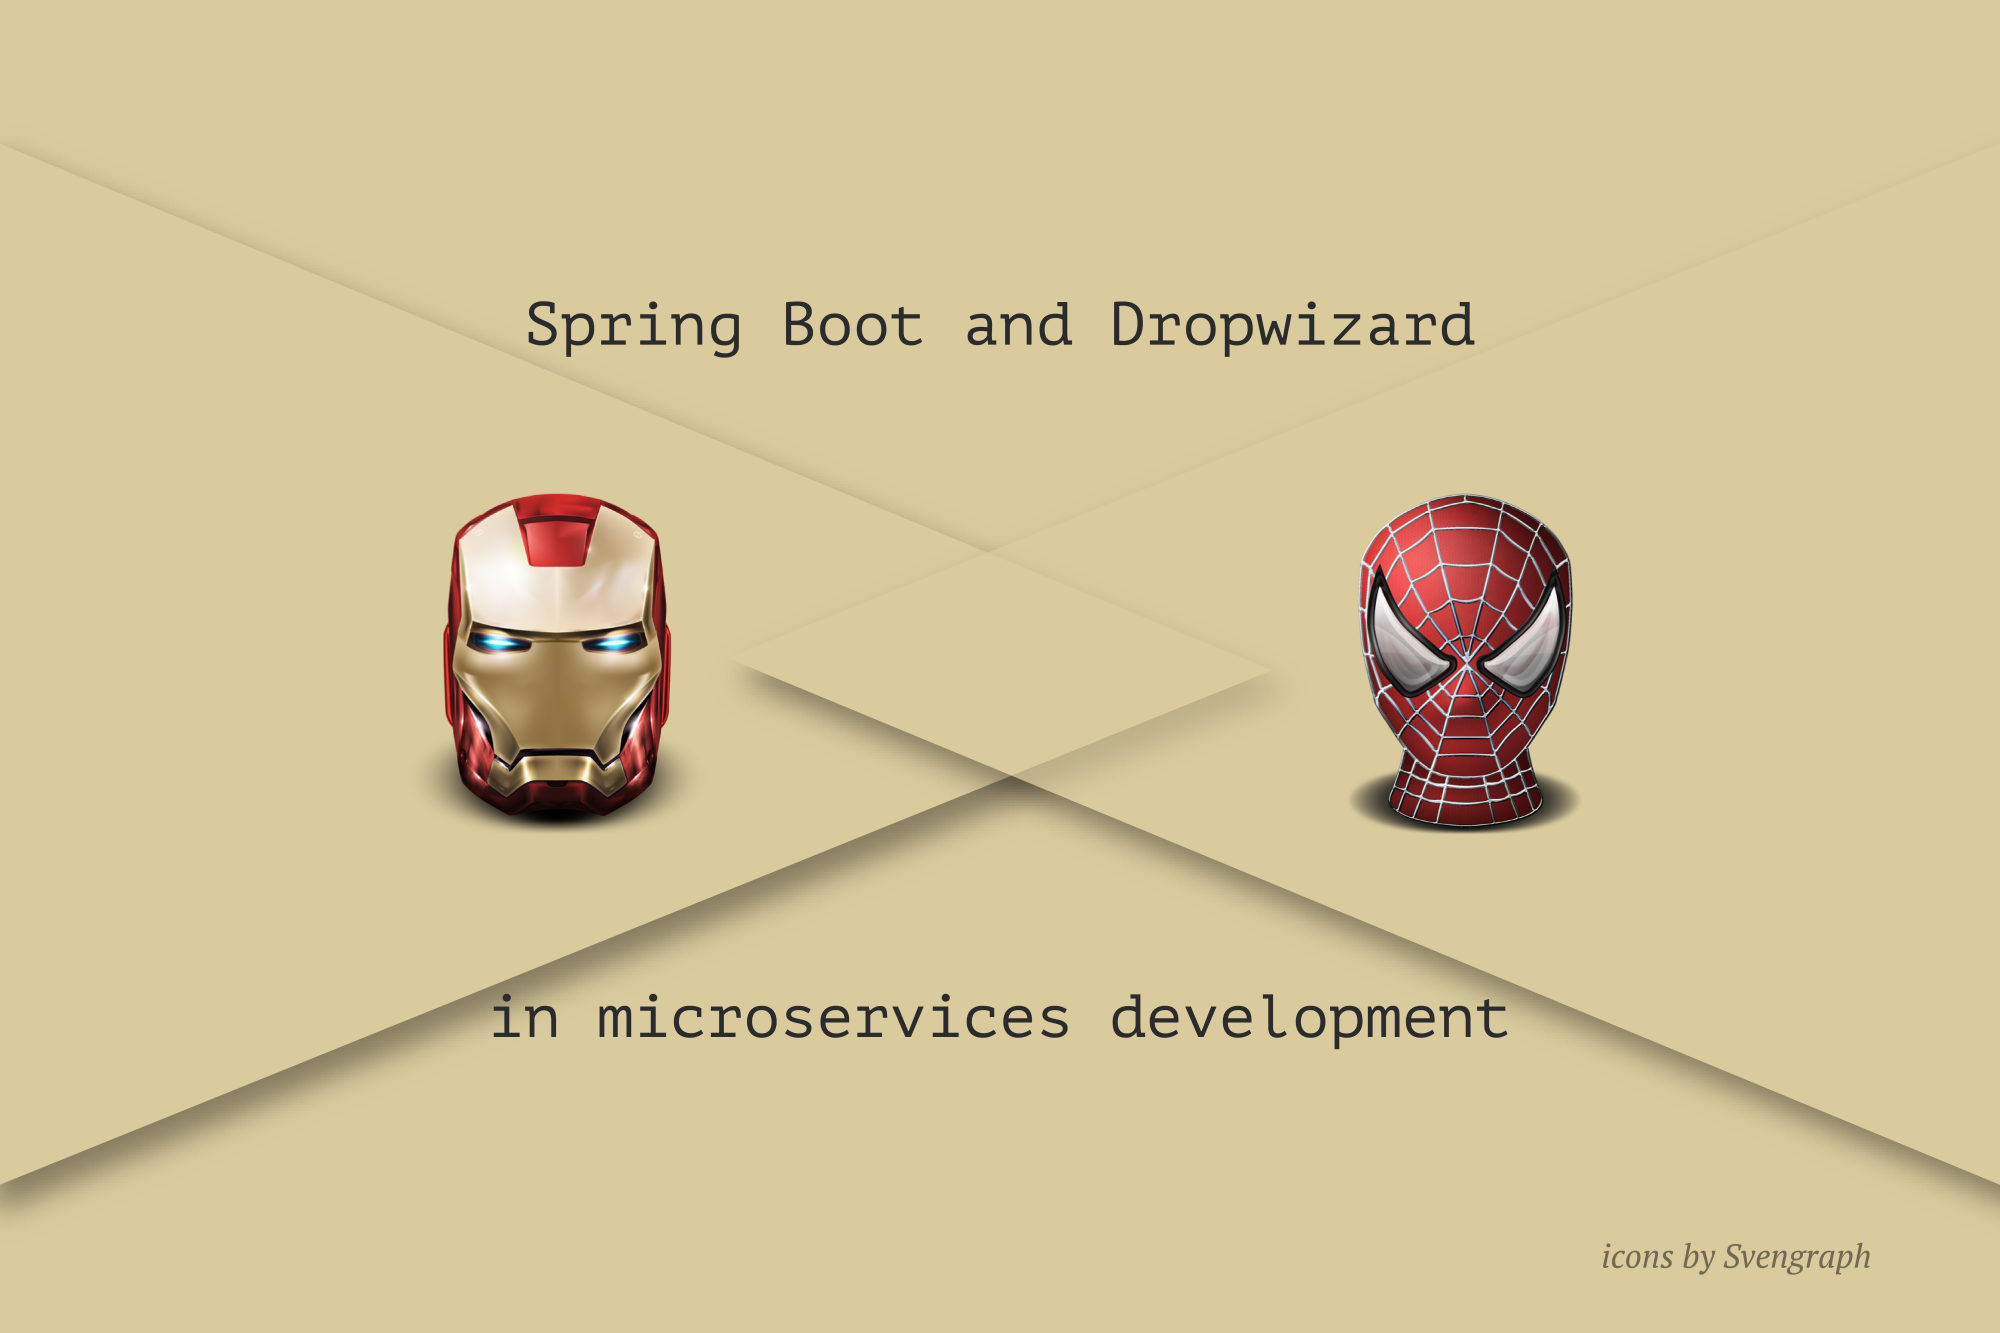 Spring Boot and Dropwizard in microservices development